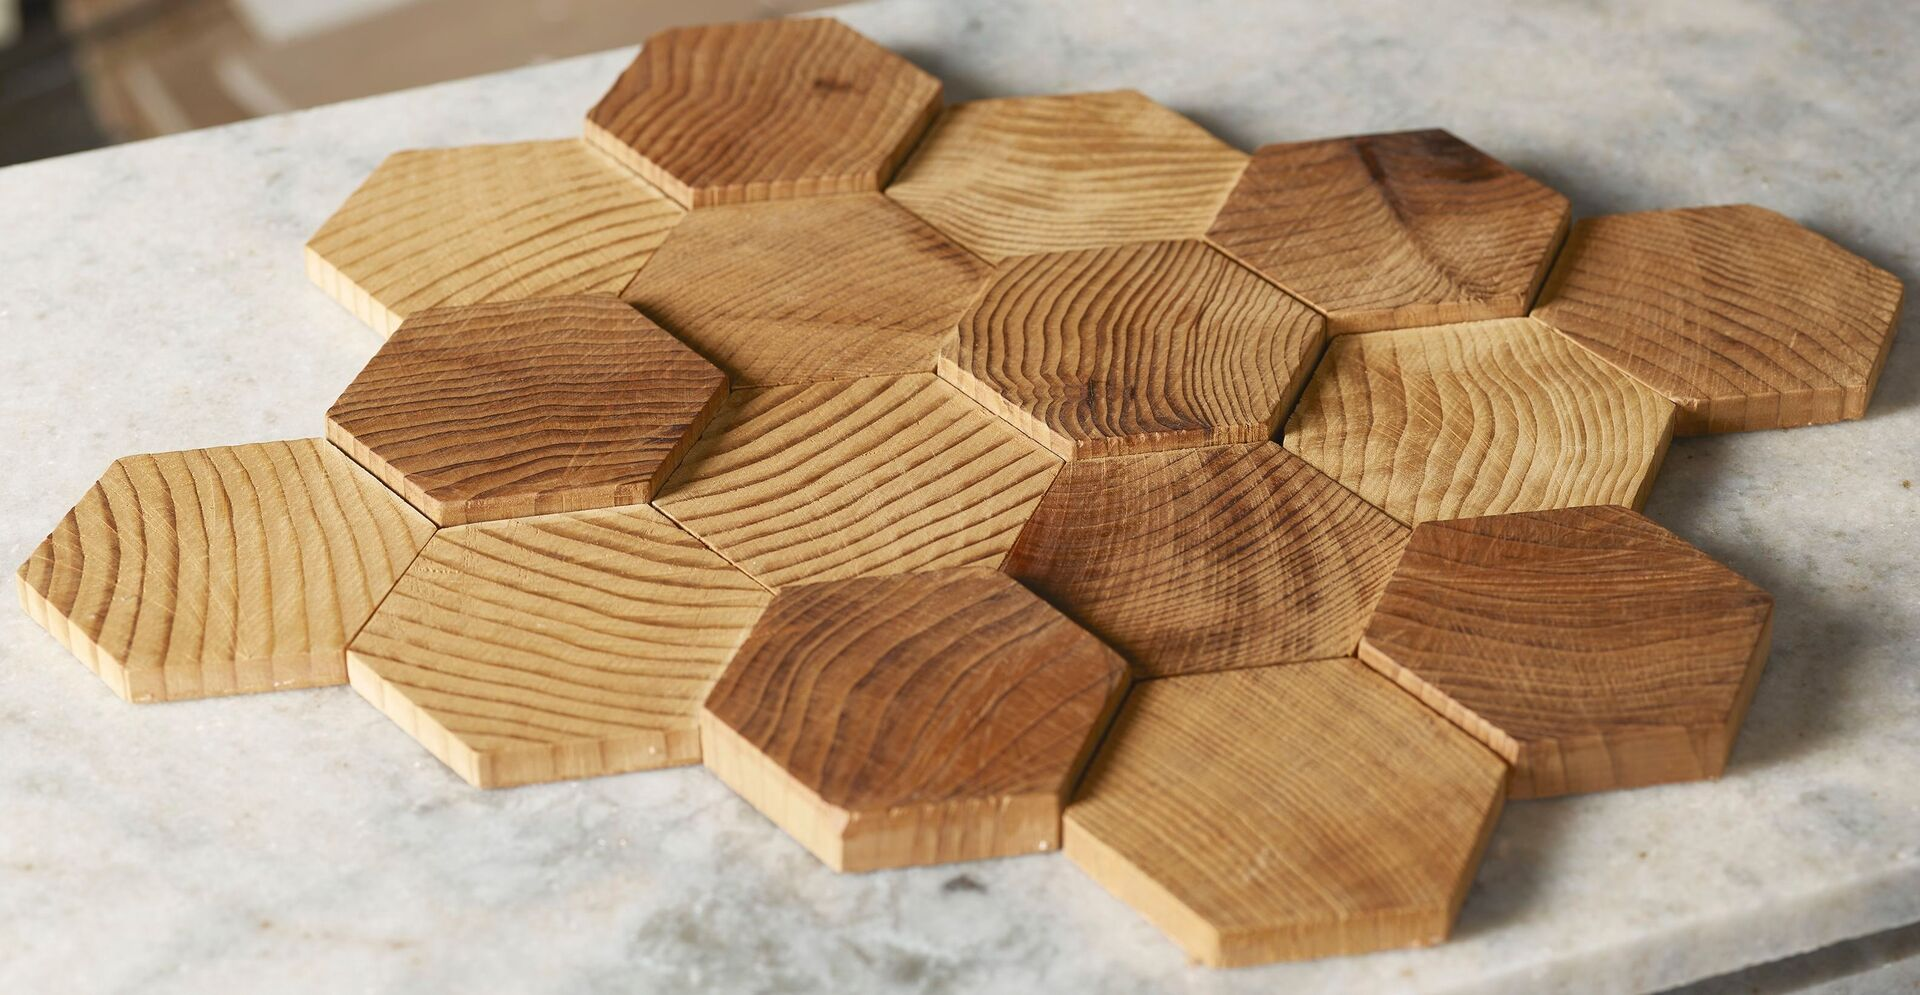 Forest Elements Stereo Standard Hexagon Mosaic Wood Wall Tiles: Stereo Standard Hexagon